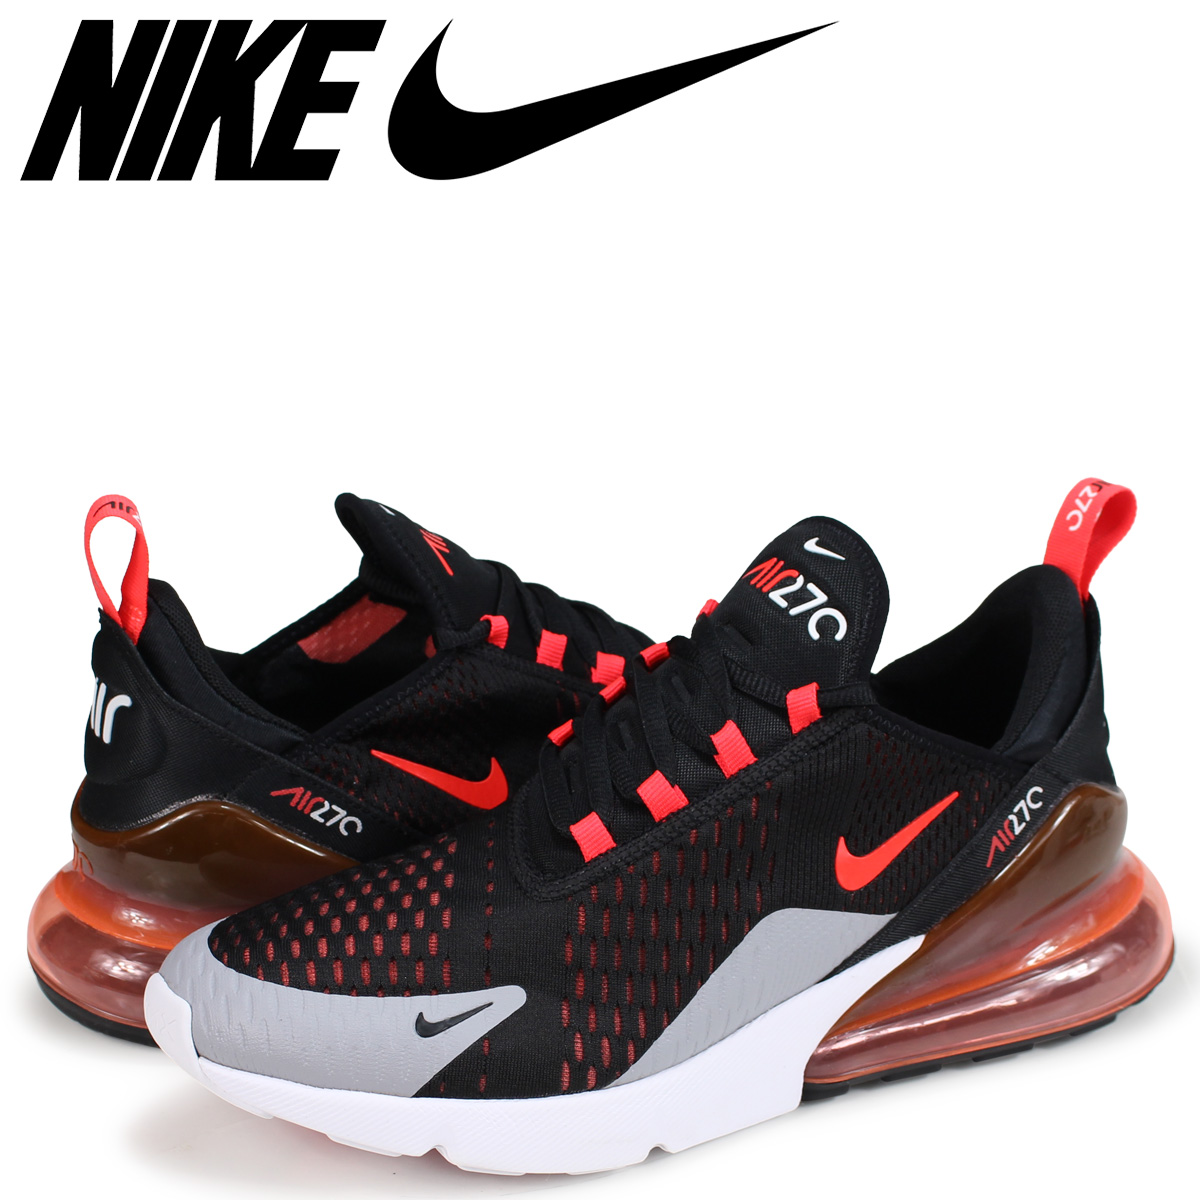 Nike NIKE Air Max 270 sneakers men AIR MAX 270 AH8050-015 black  load  planned Shinnyu load in reservation product 10 3 containing  a47af99da3